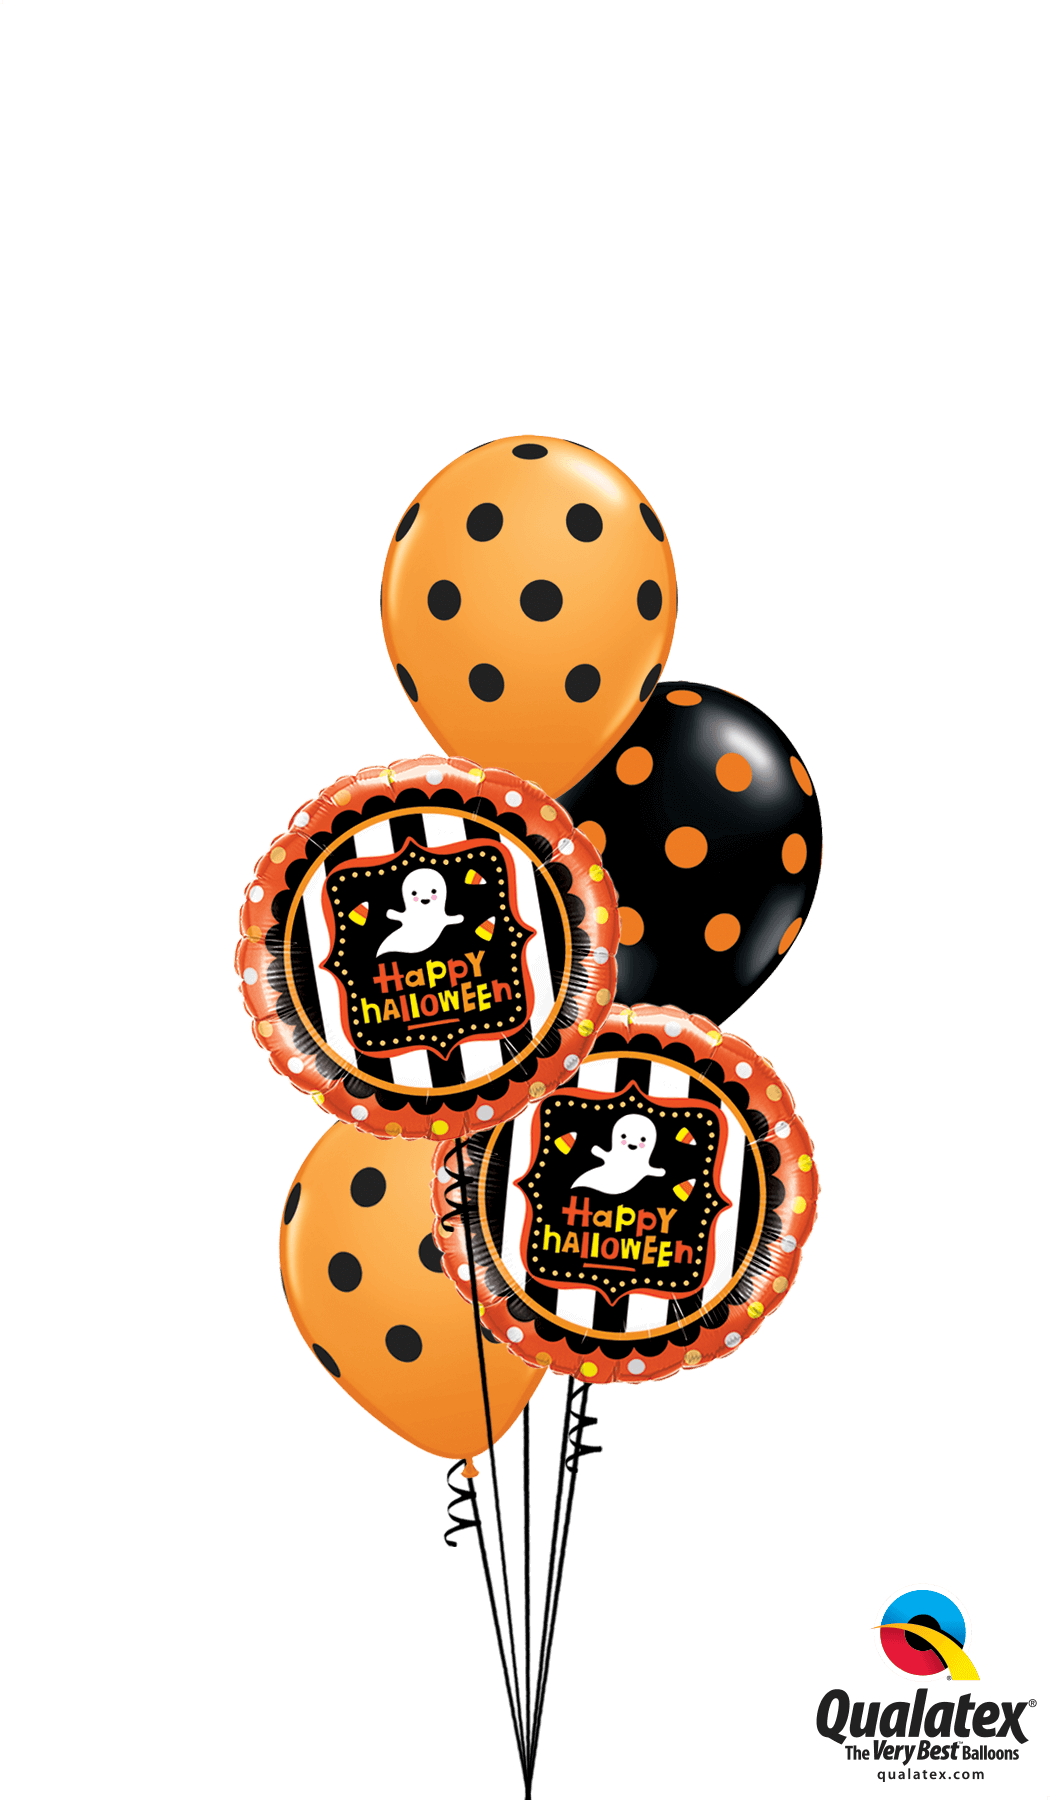 Halloween balloons clipart png freeuse download Halloween Balloons | Cindy's Balloons and Flowers png freeuse download